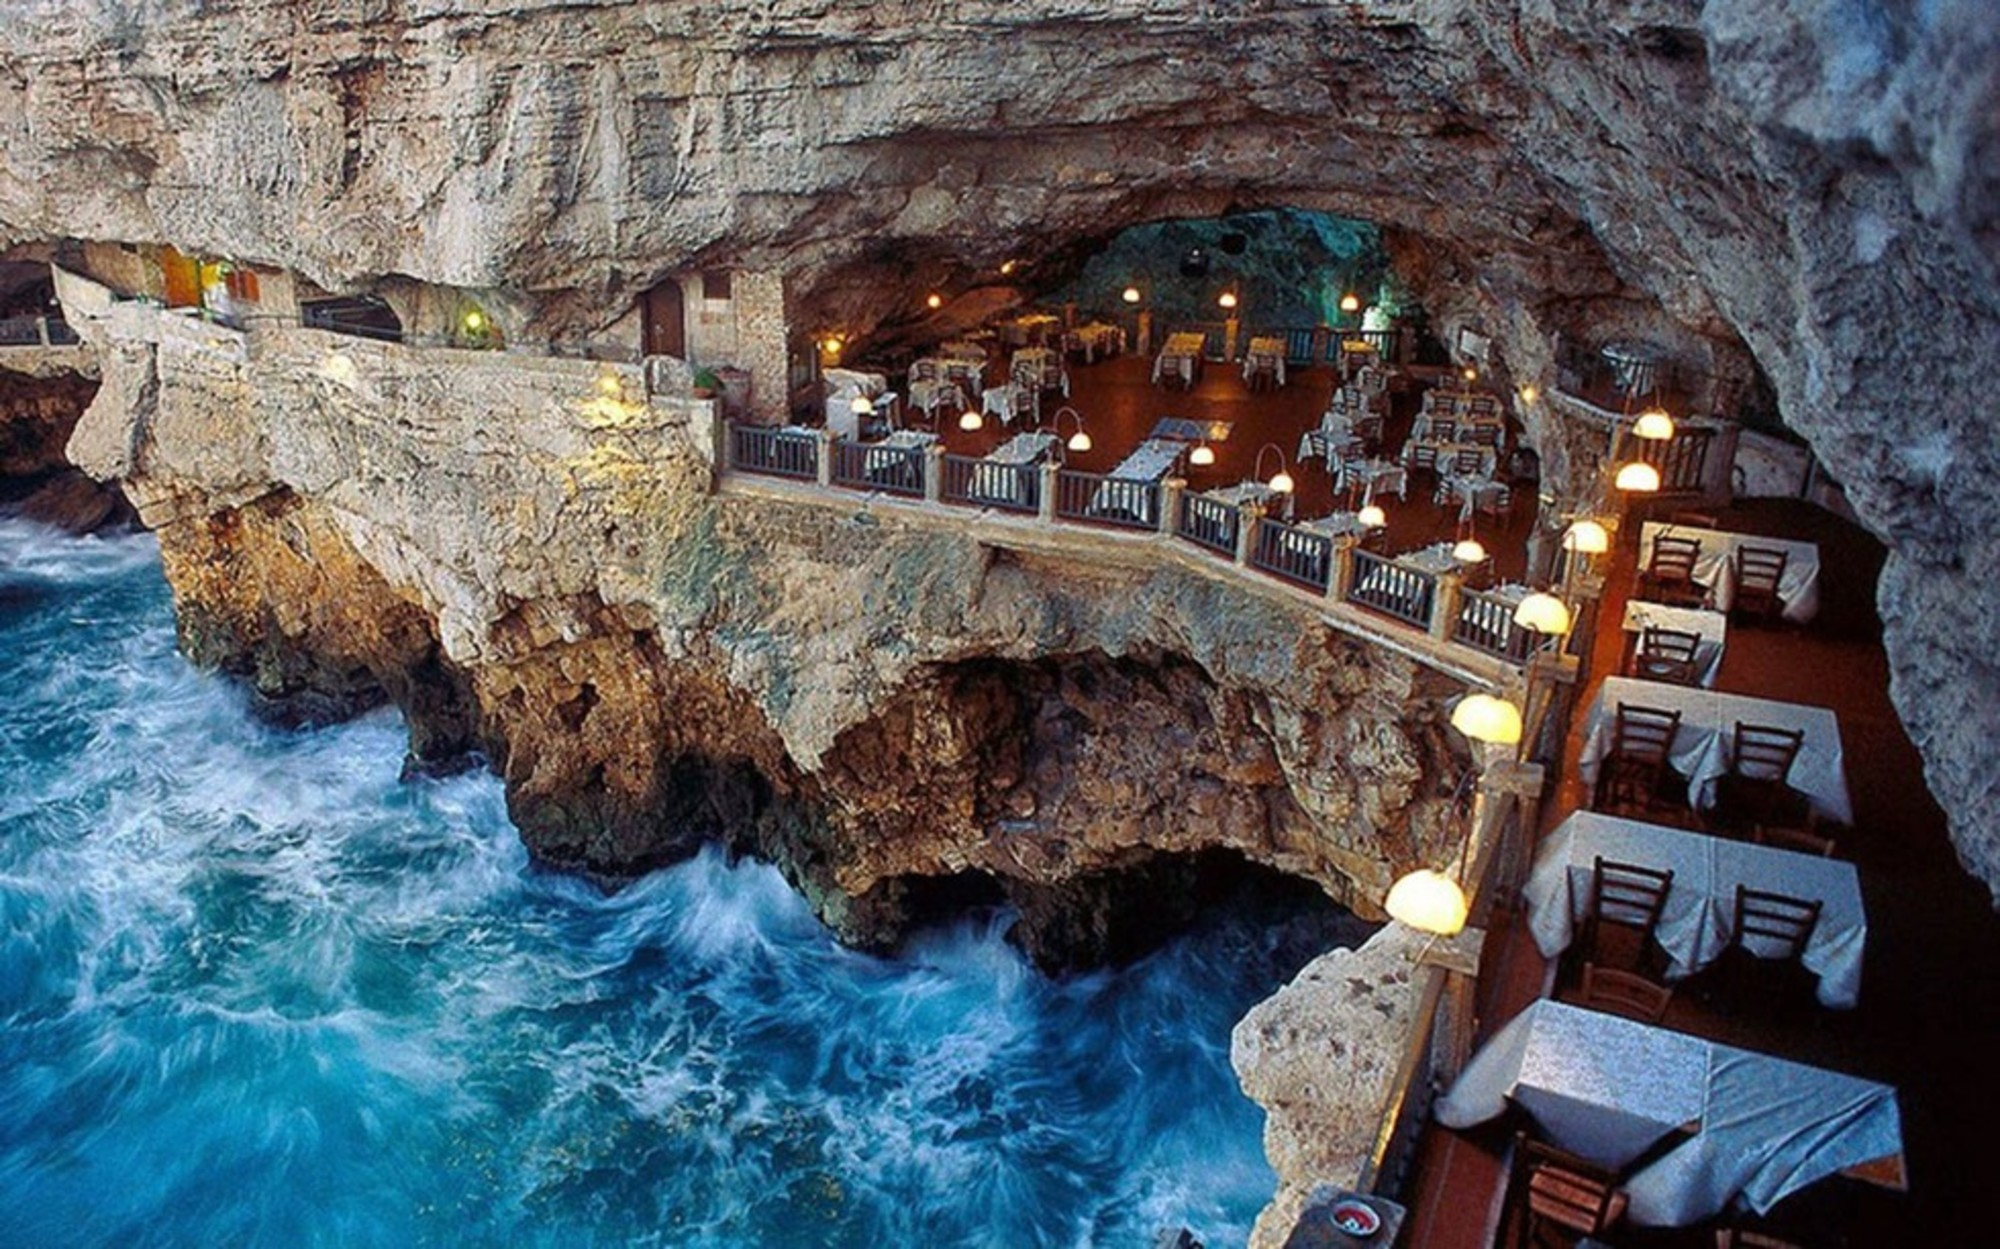 Luxury restaurants: an unforgettable experience inside a cave